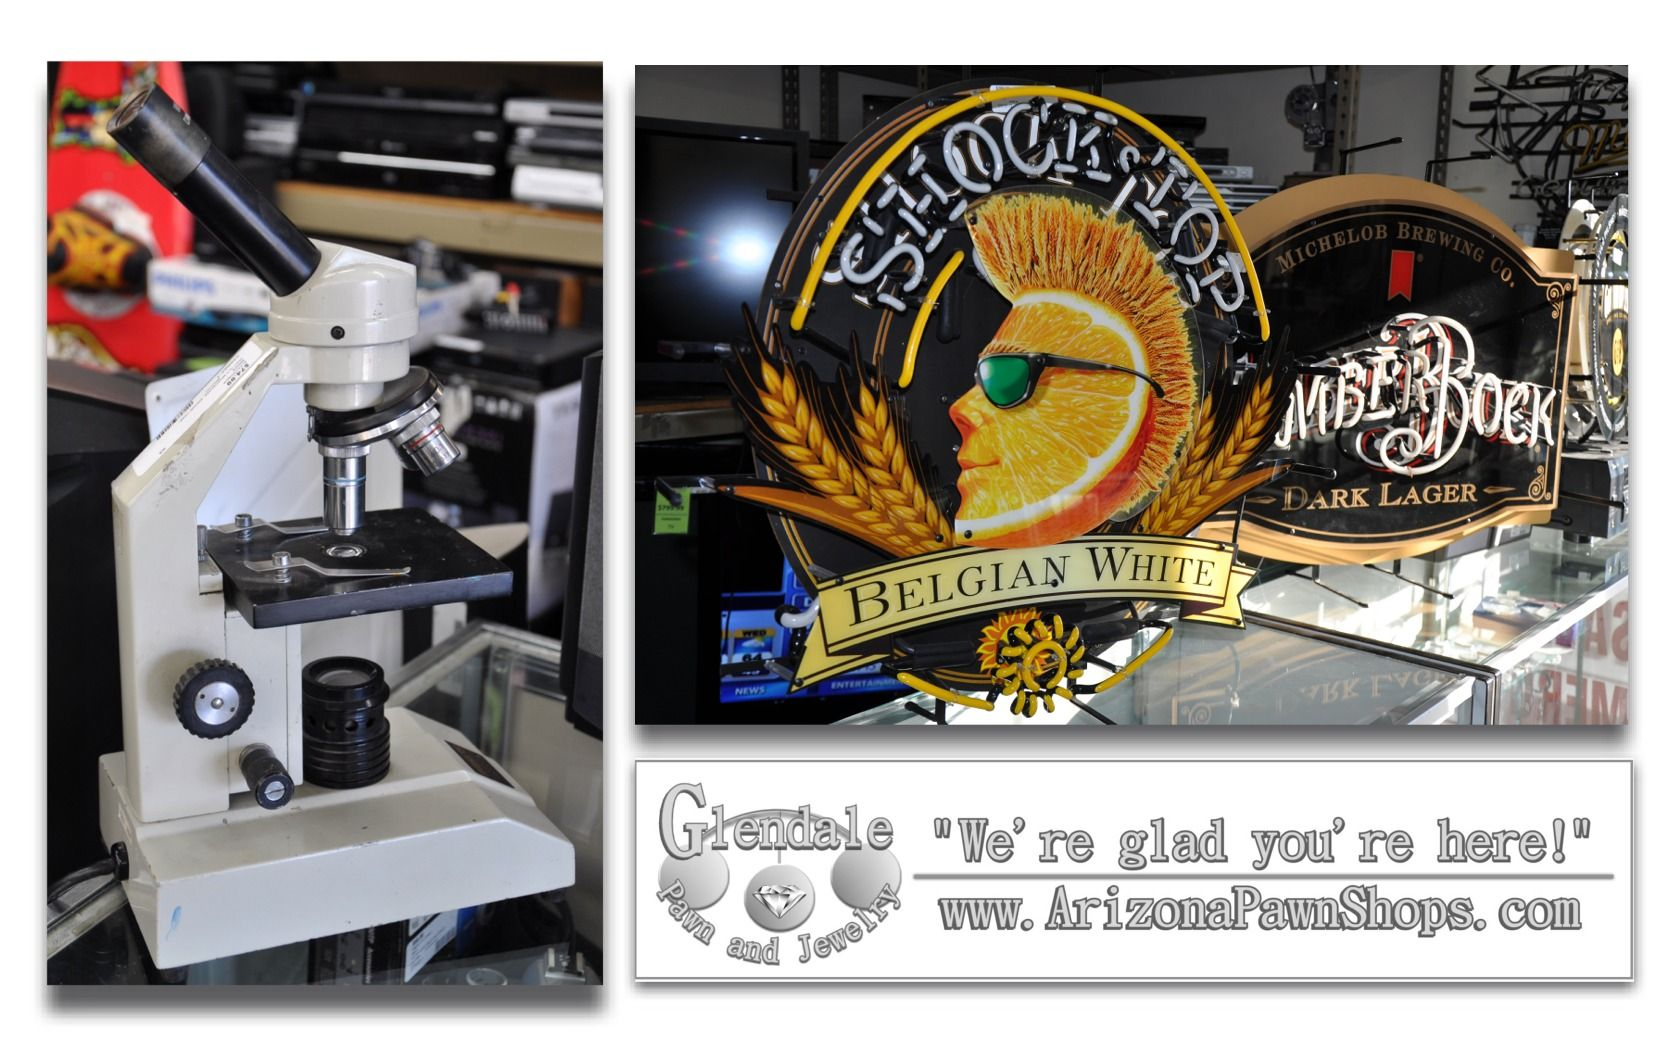 Medical grade microscope and some rare neon beer signs...all on the same shelf...gotta love that!